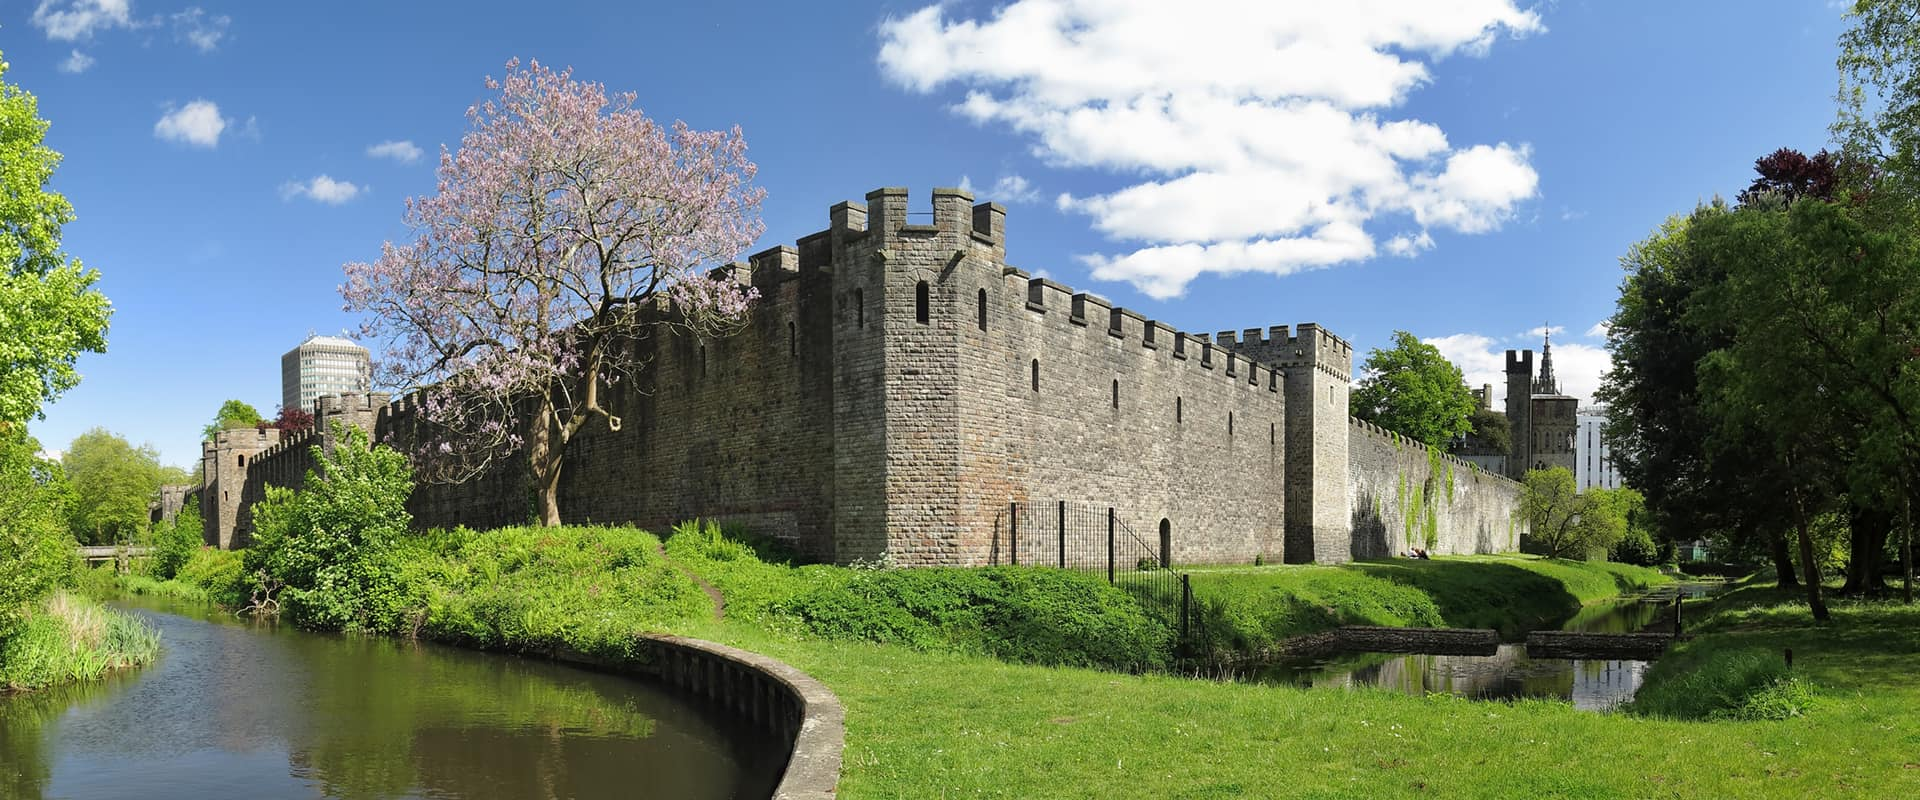 Cardiff Castle - View from the Park